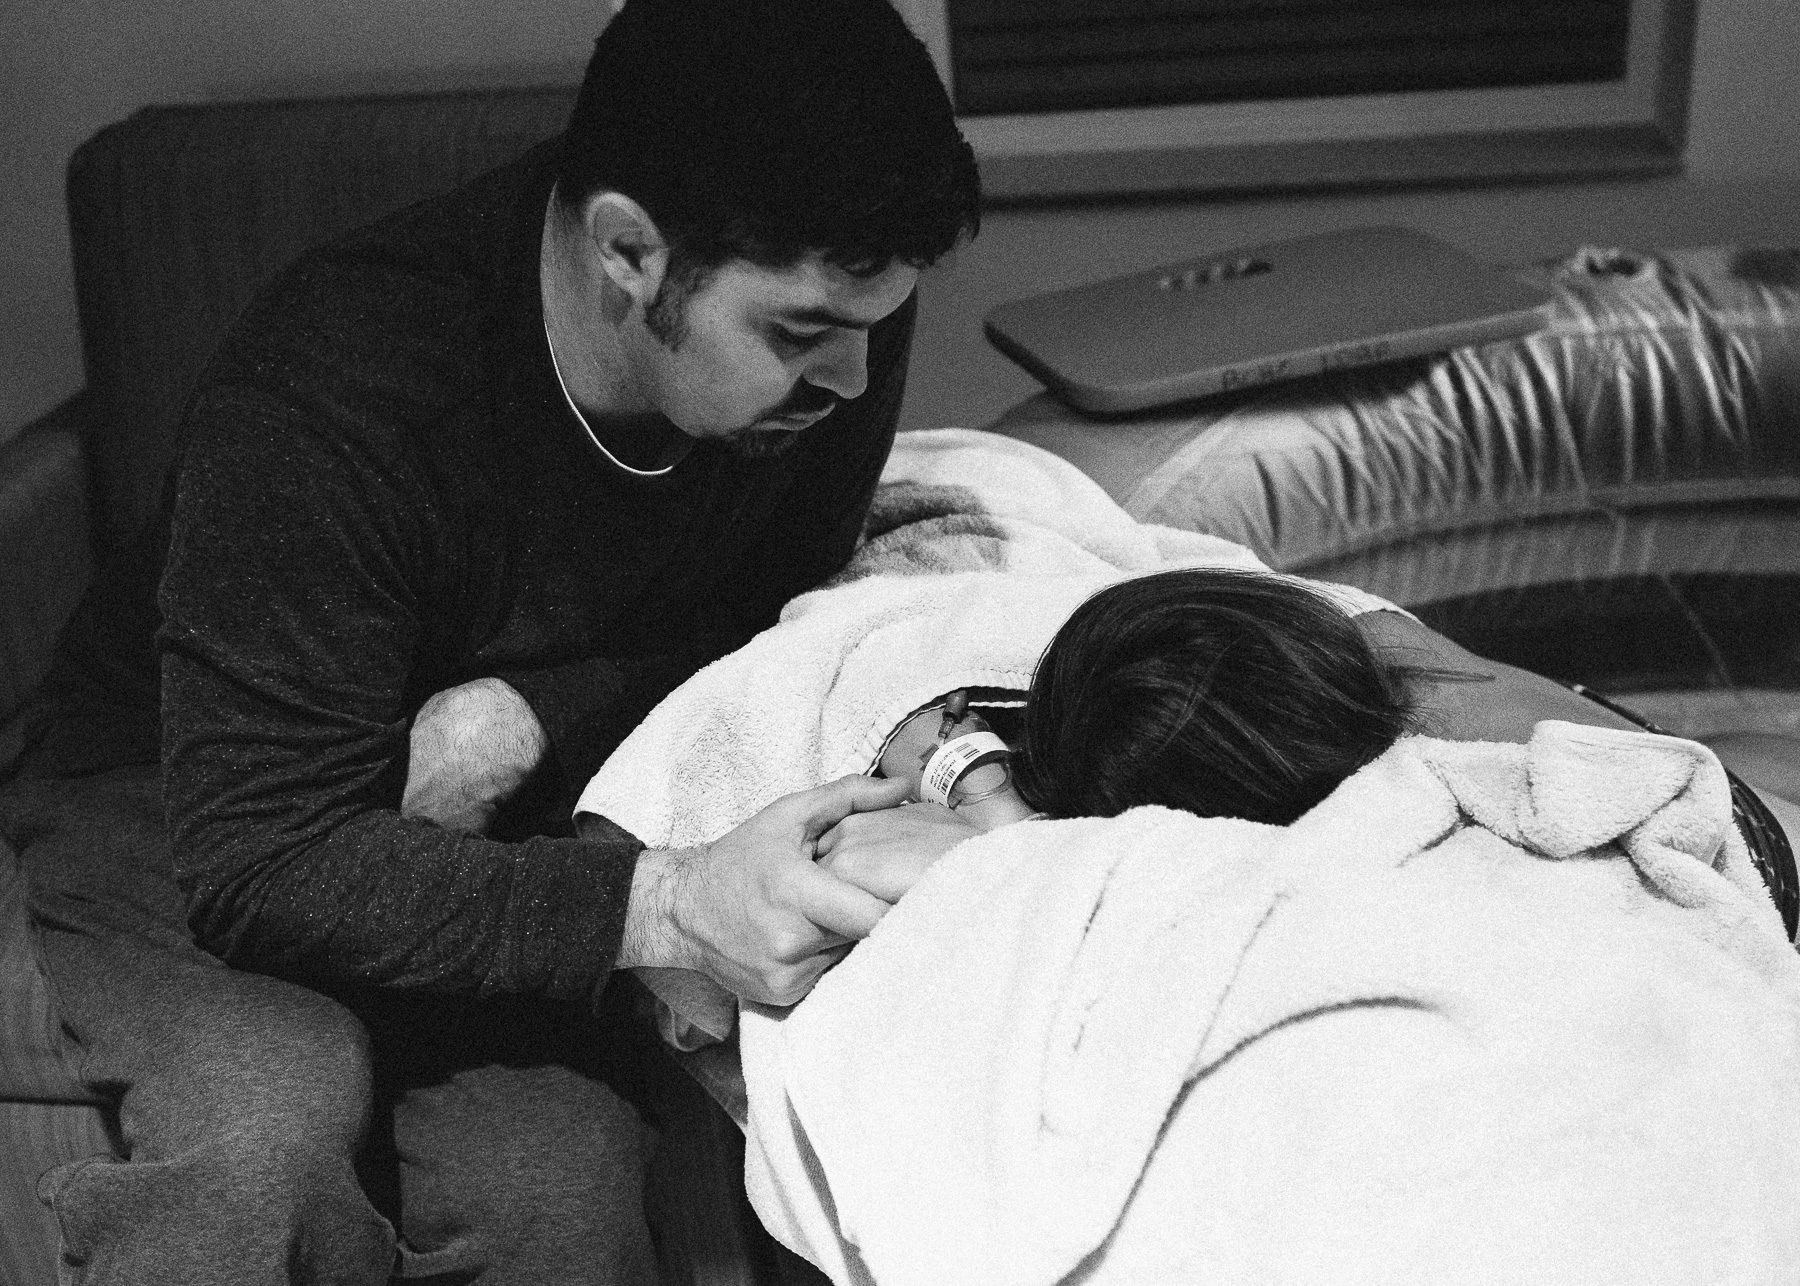 husband holding wife's hand during contraction